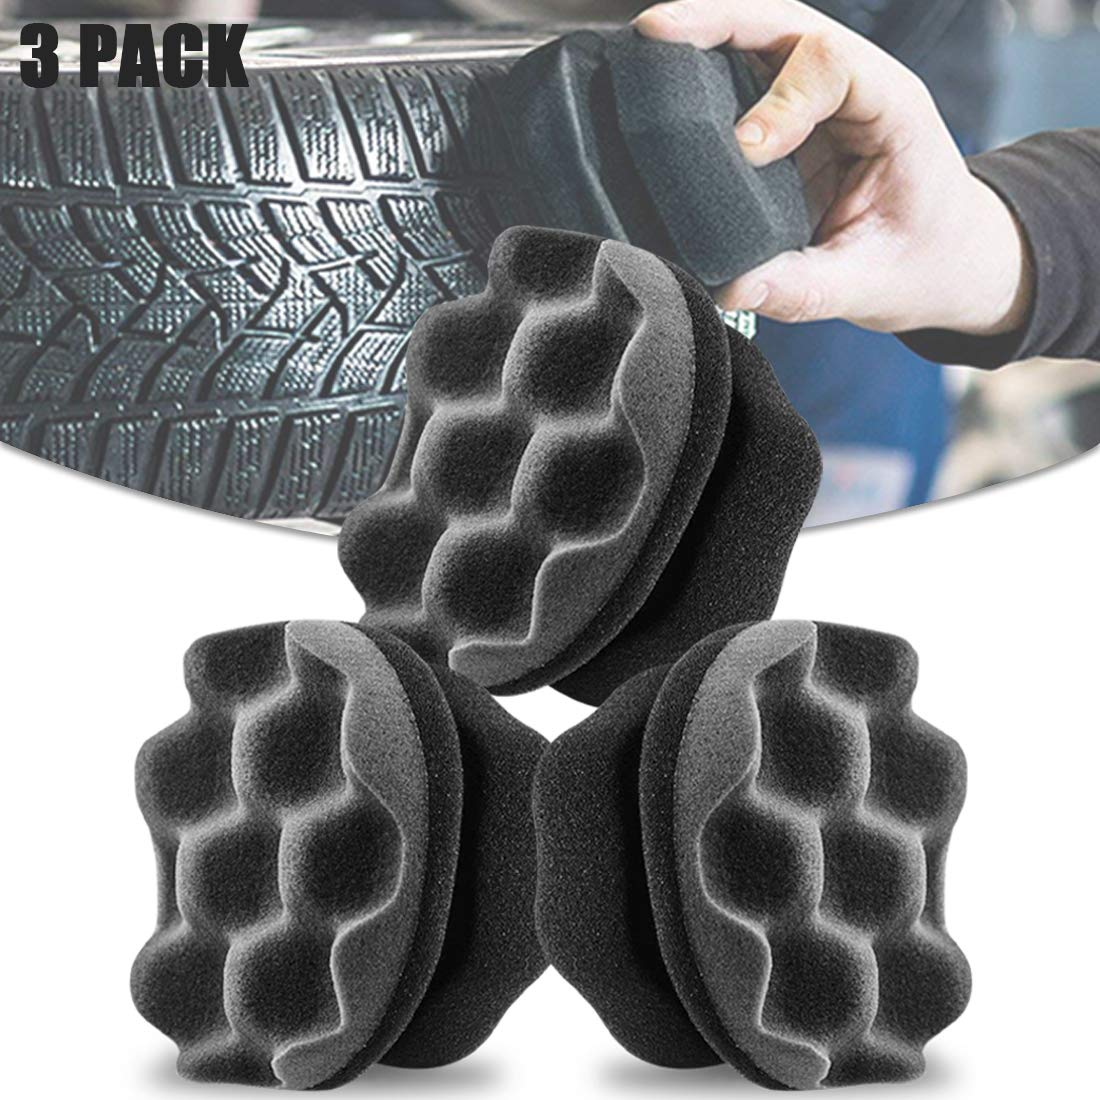 2Buyshop 3 Pack Tire Shine Applicator Ergonomic Design Tire Brush Tire Dressing Applicator Pad Durable, Keeps Tires Shine, Reusable and Washable, Perfect for Tire Detailing (Big Size)